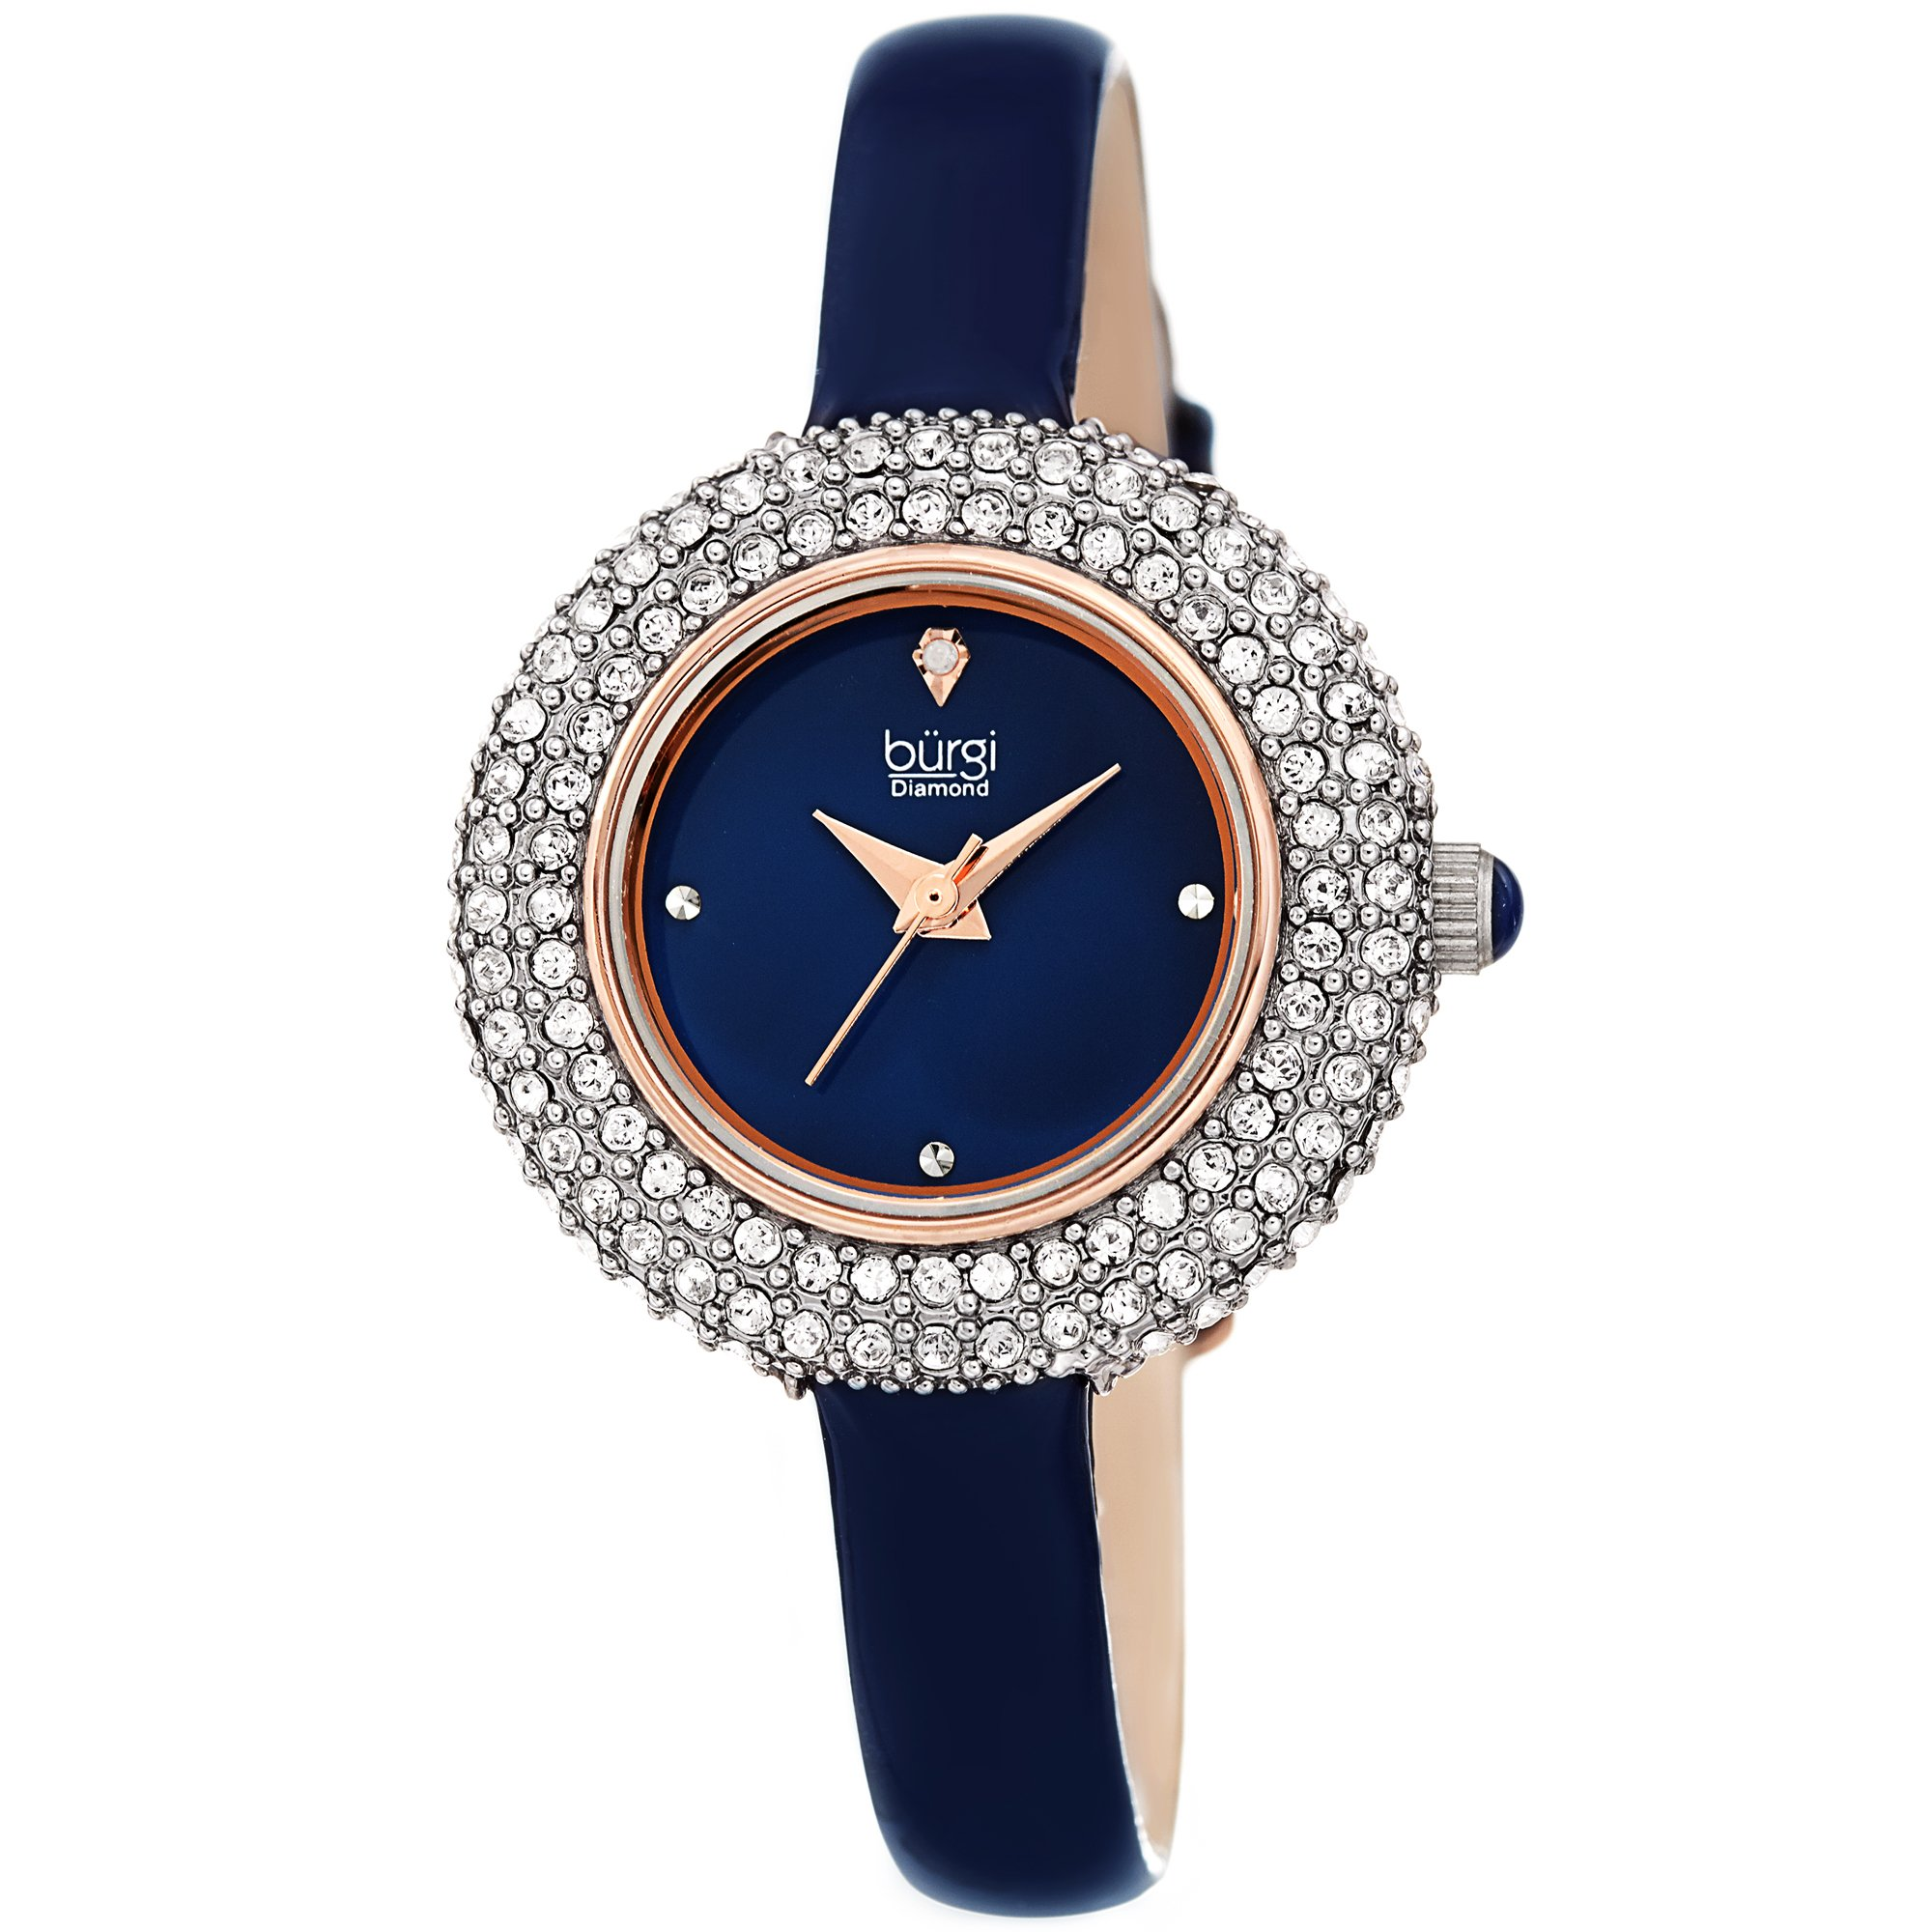 Burgi Women's BUR195 Swarovski Crystal & Diamond Accented Watch - Comfortable Leather Strap - Comes in A Gift Box (Rose Gold & Blue)